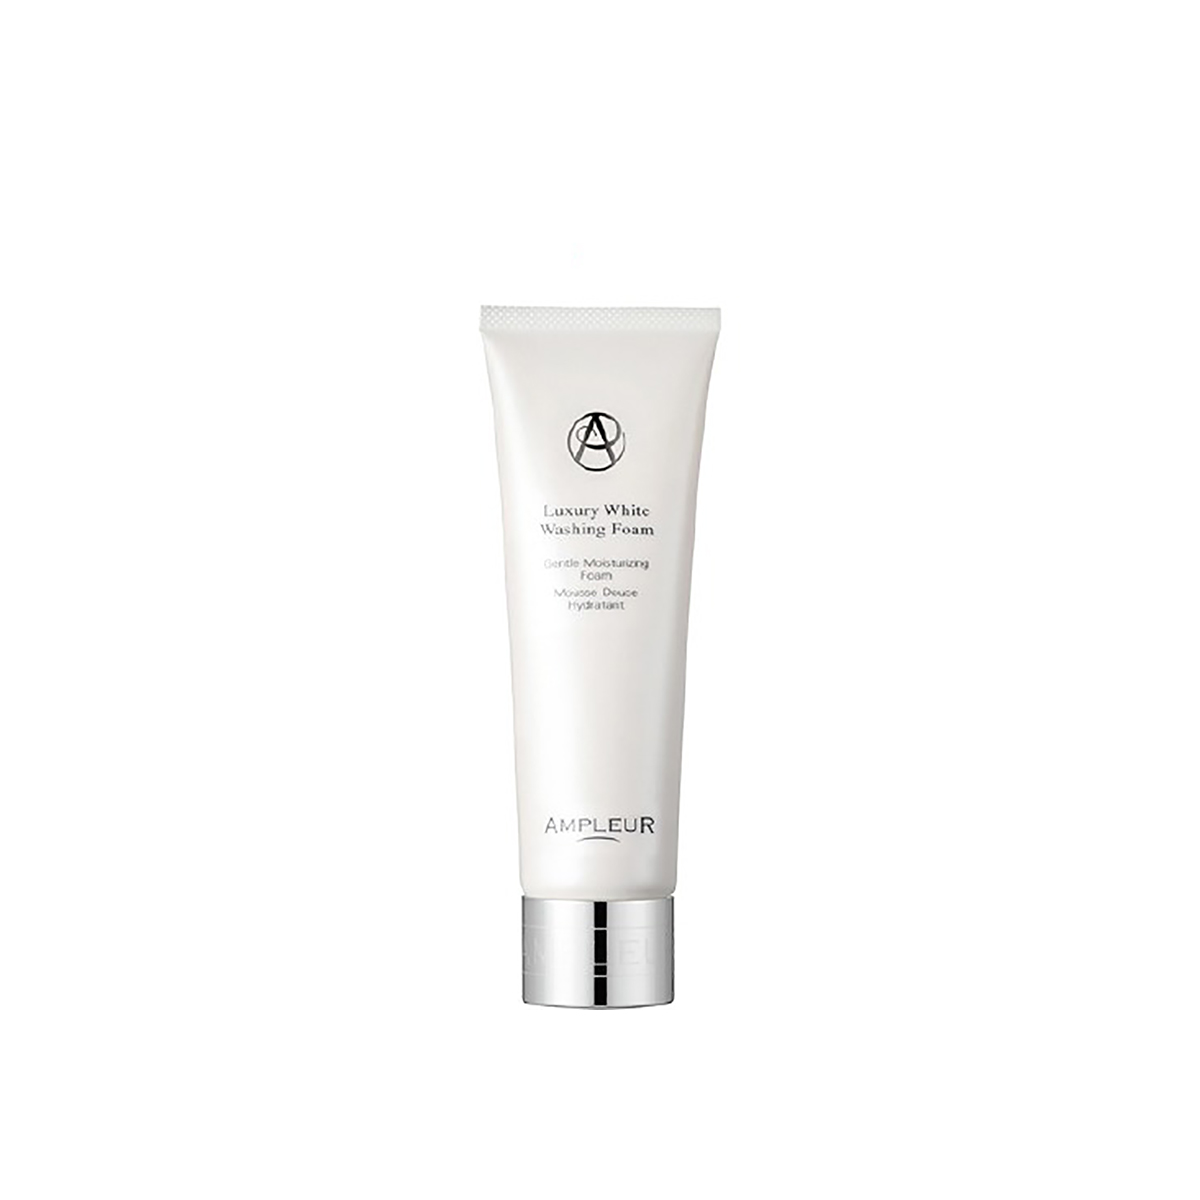 Buy AMPLEUR Luxury White Washing Form 130g [Ship from SG / 100% Authentic] Singapore